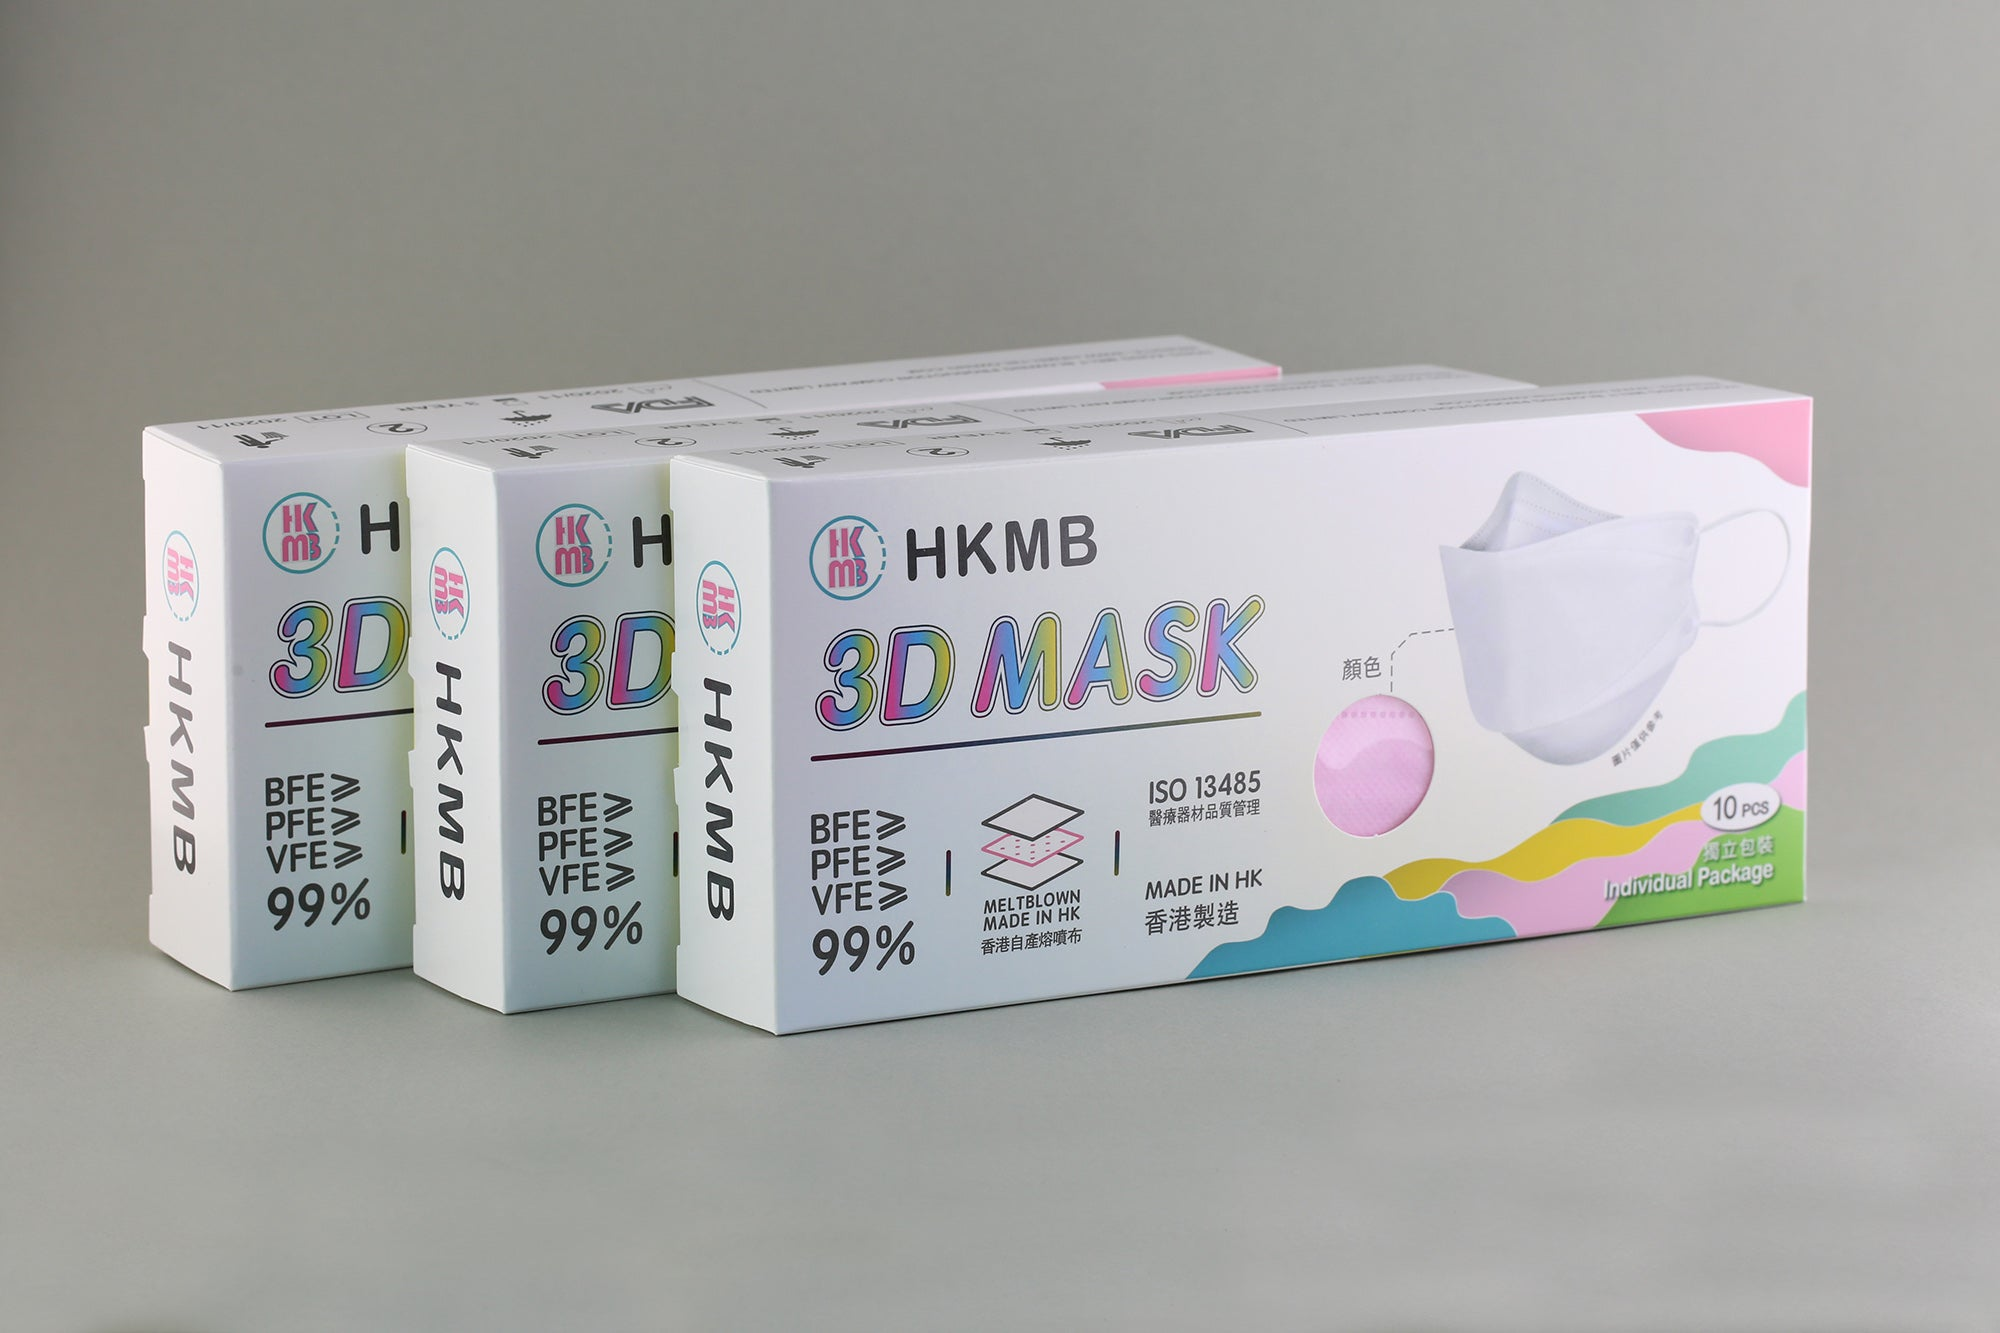 Sakura Pink 3D Mask HKMB VFE99 10pcs/box【Made in Hong Kong】